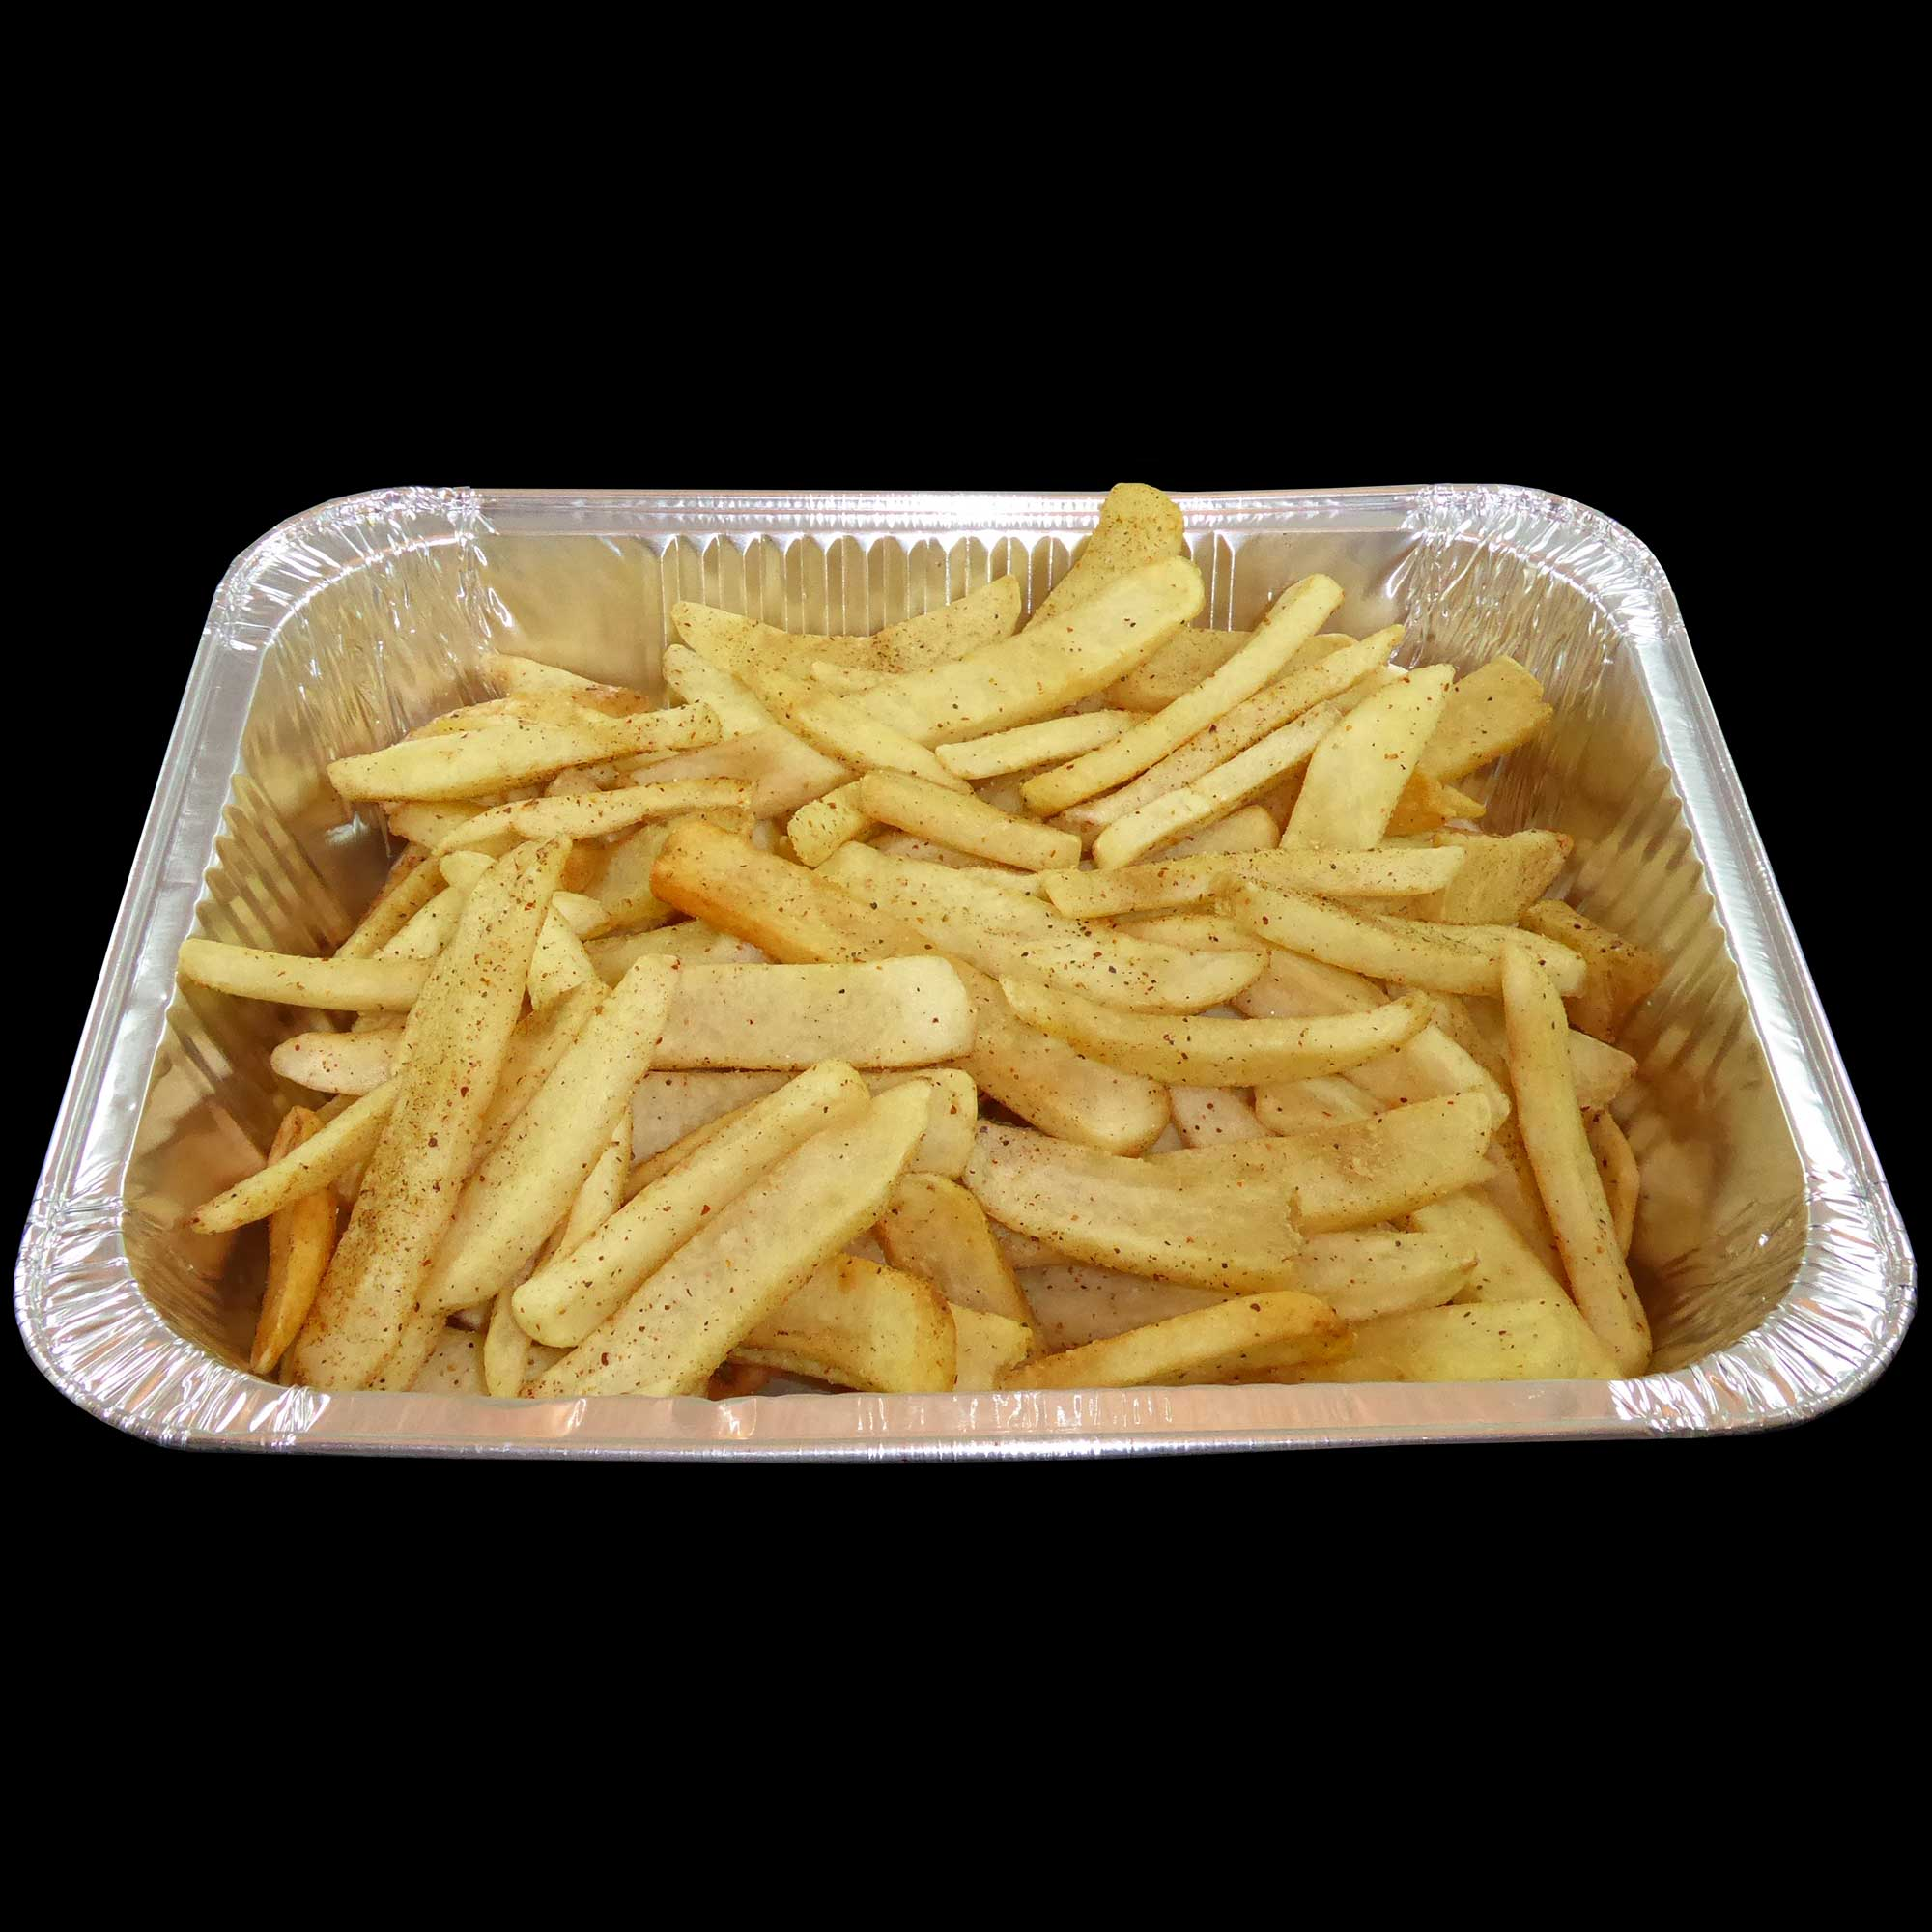 "Kids Korner Fries <strong style=""font-size: 20px;""><span style=""color: rgb(255, 0, 0);""><span style=""font-family: Calibri, sans-serif;"">New!</span></span></strong>"